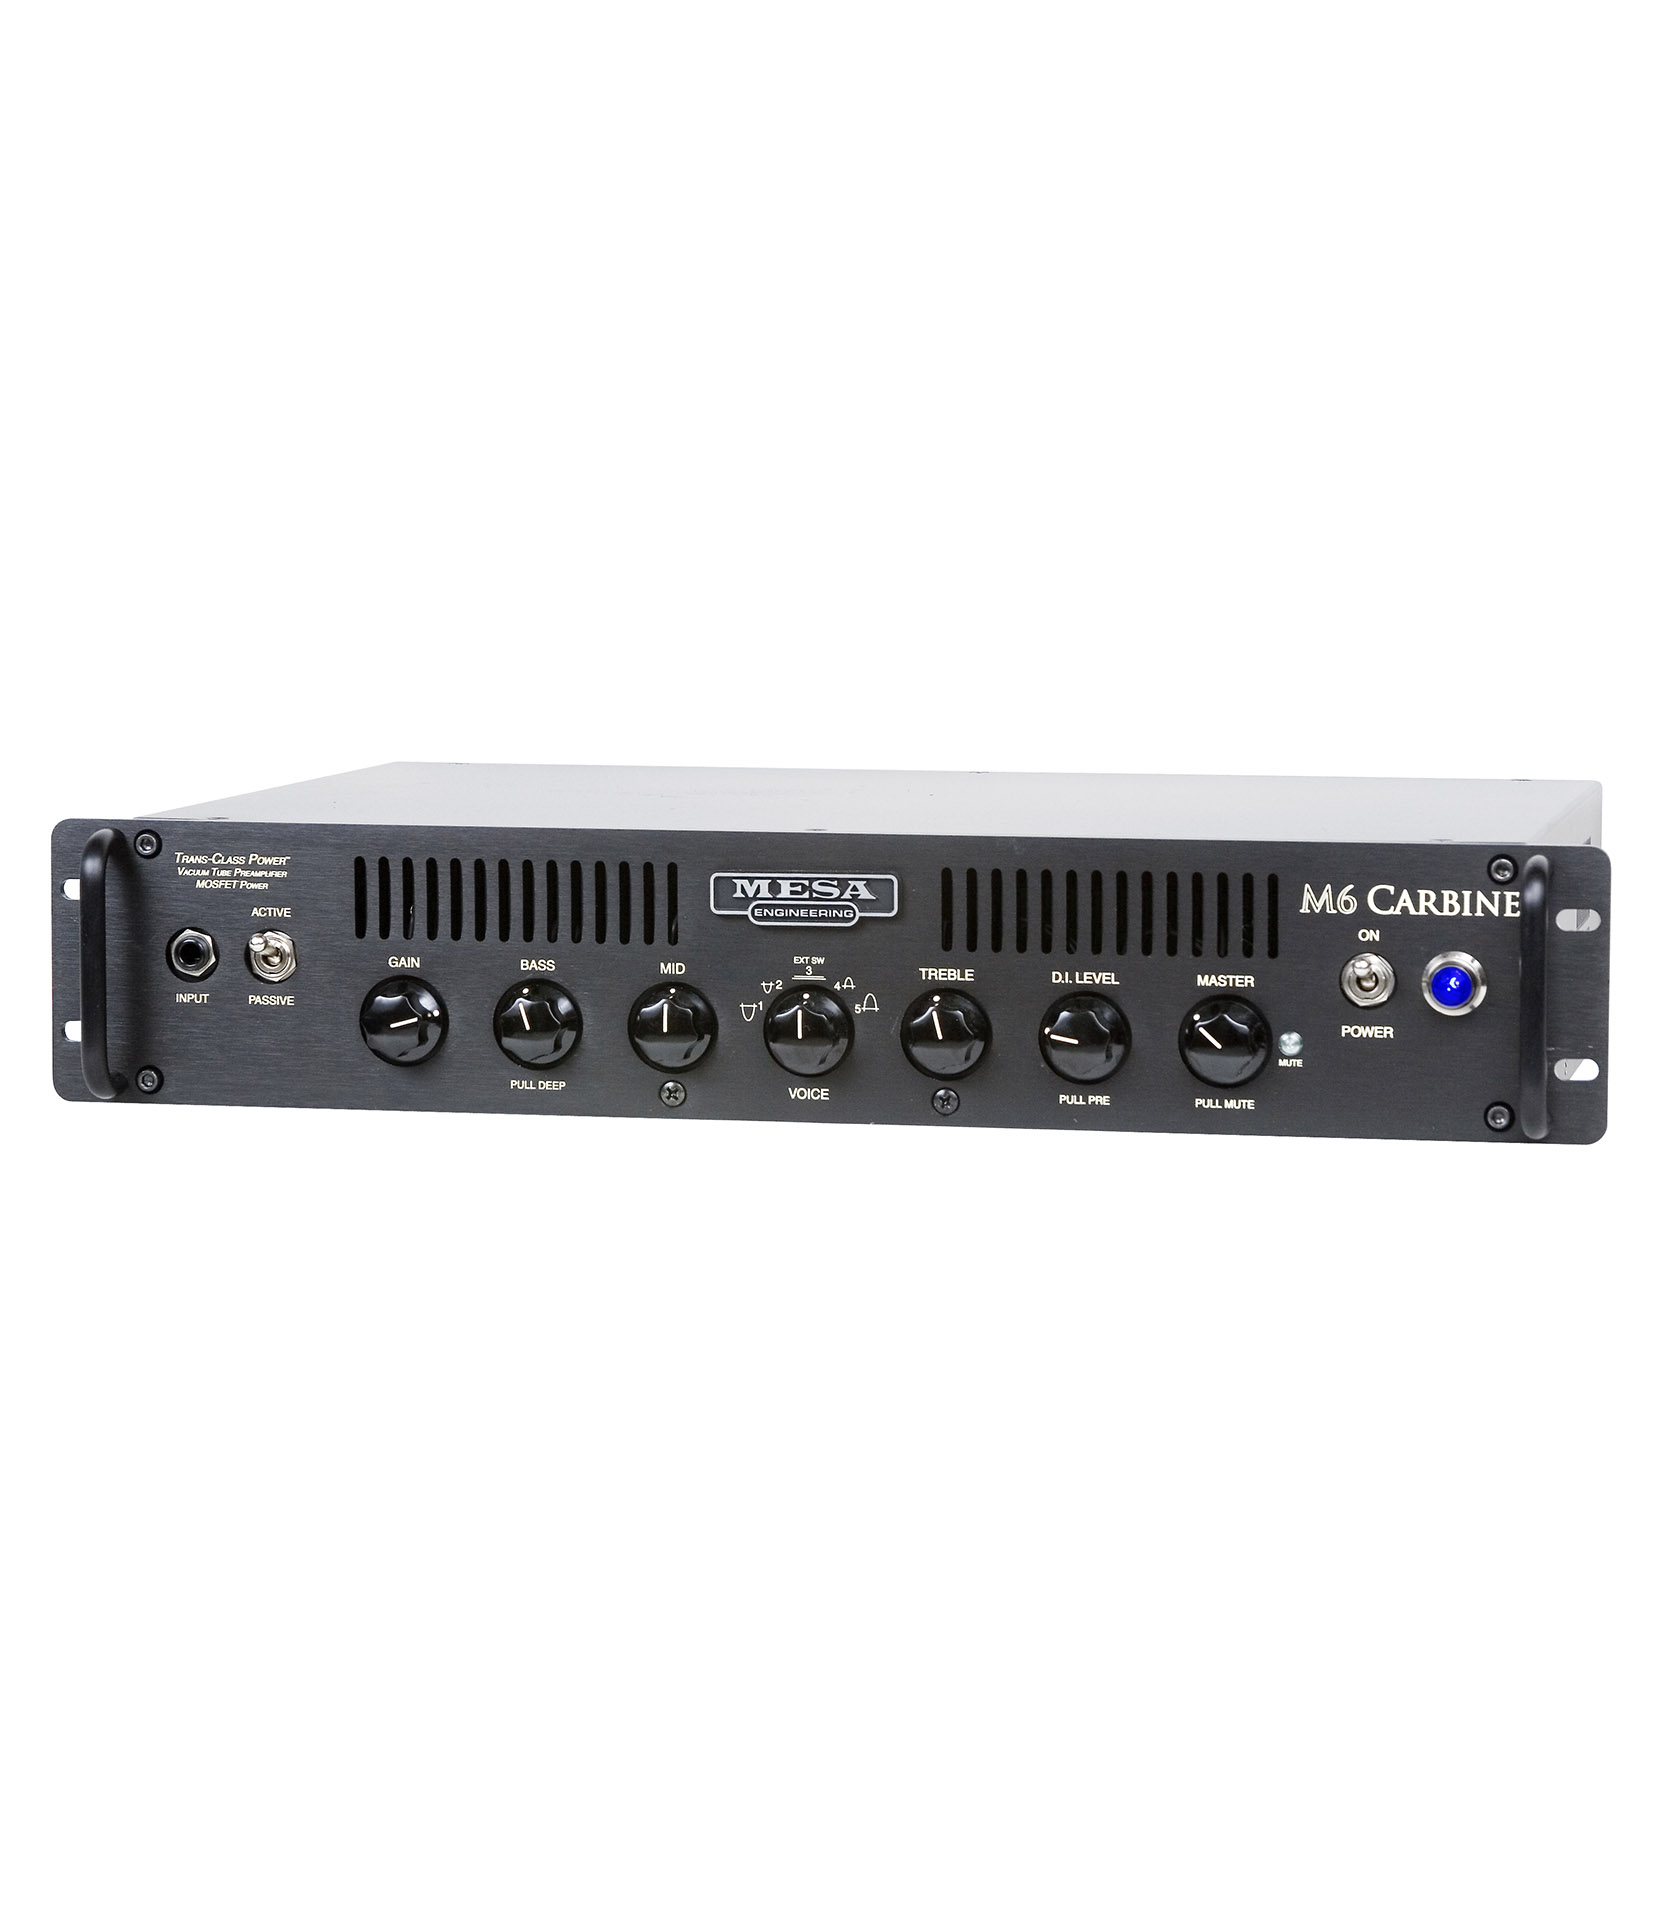 Melody House Musical Instruments Store - M6 Carbine Rackmount Head